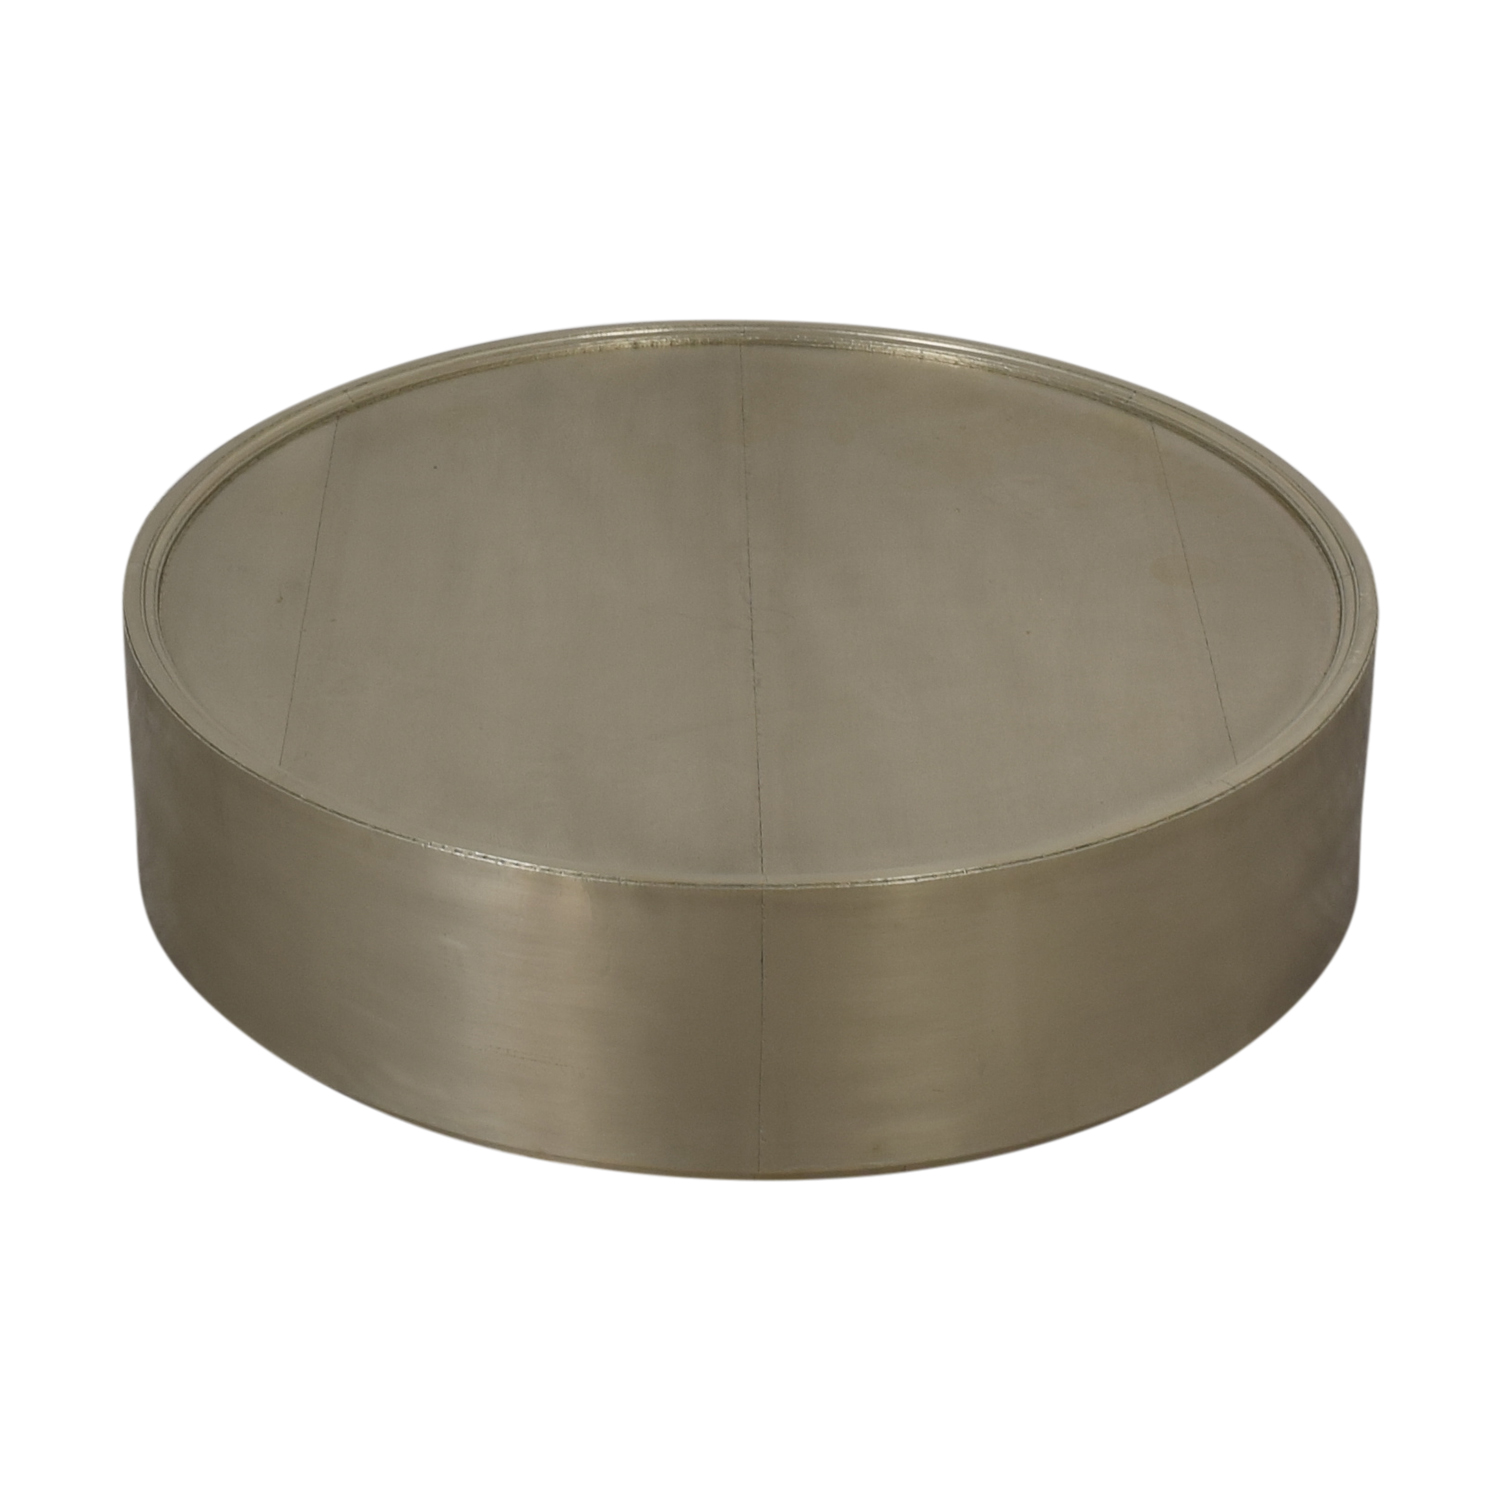 Anthropologie Anthropologie Chrome Round Coffee Table for sale